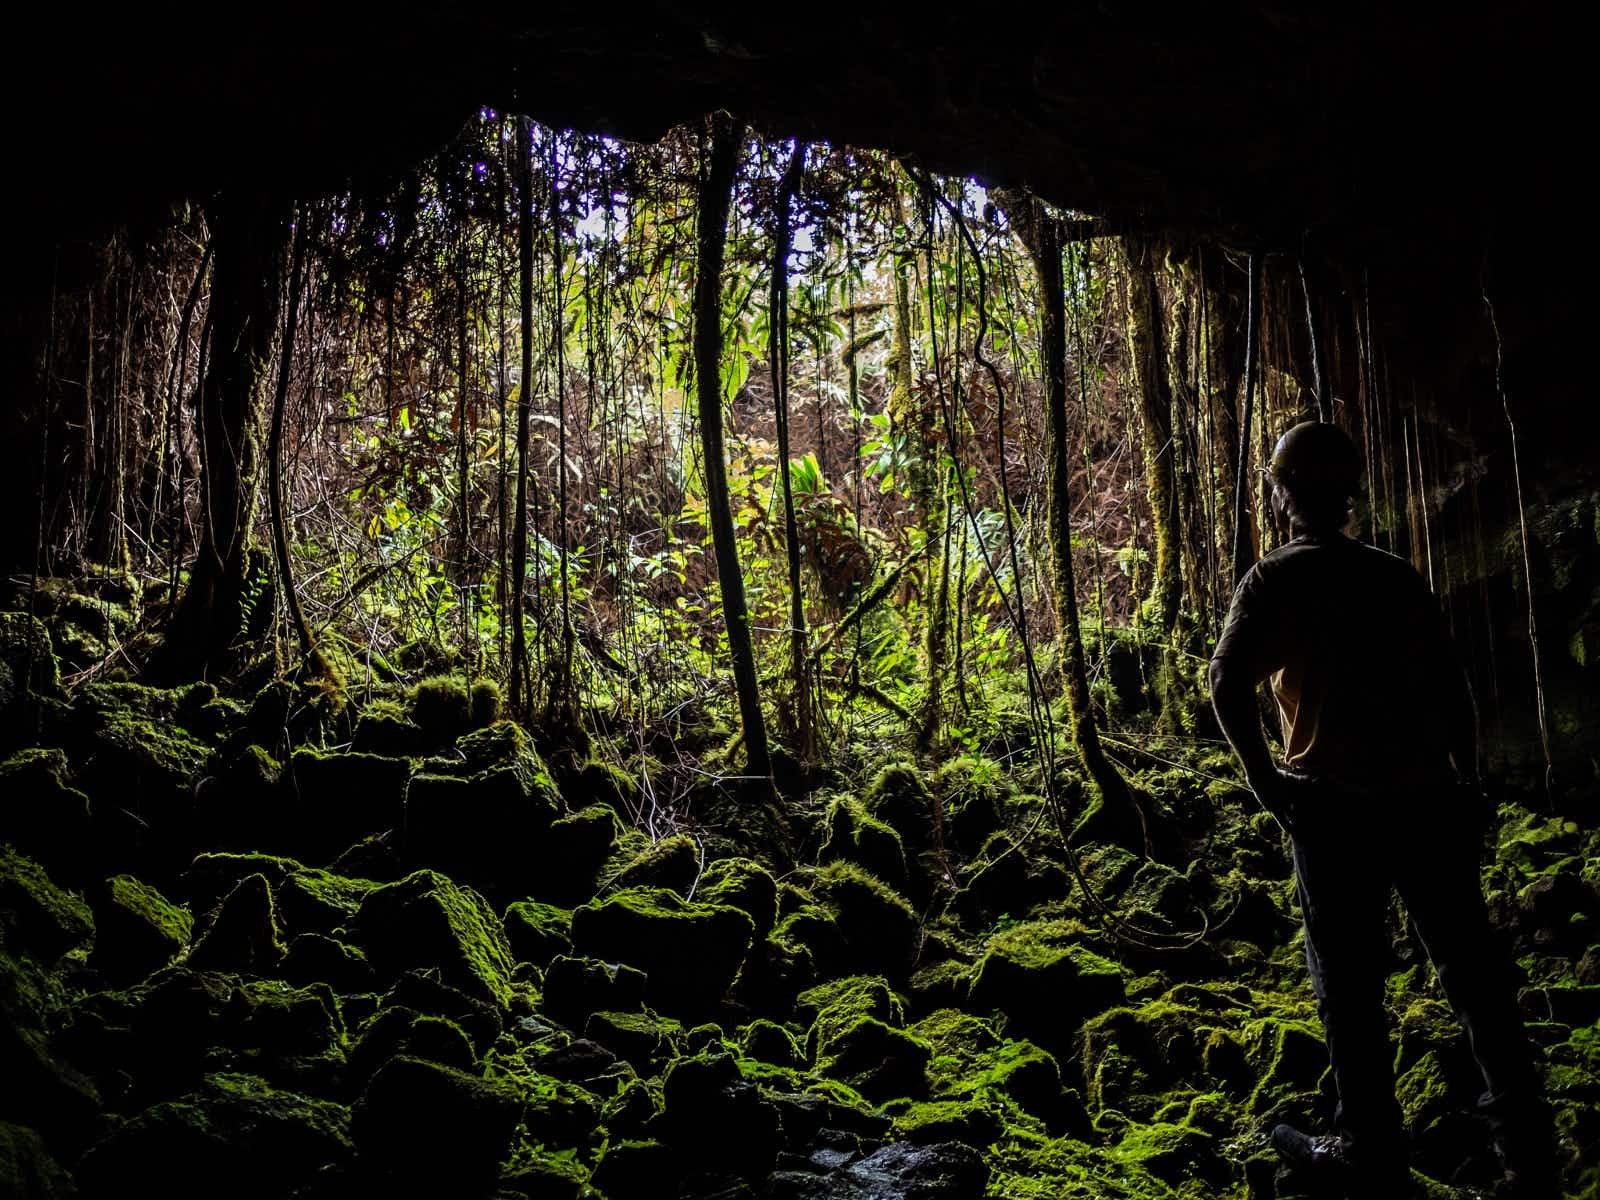 More than 100 entrances in the lush jungle of the Big Island lead to the Kazamura Lava Tube © Shaun Busuttil / Lonely Planet